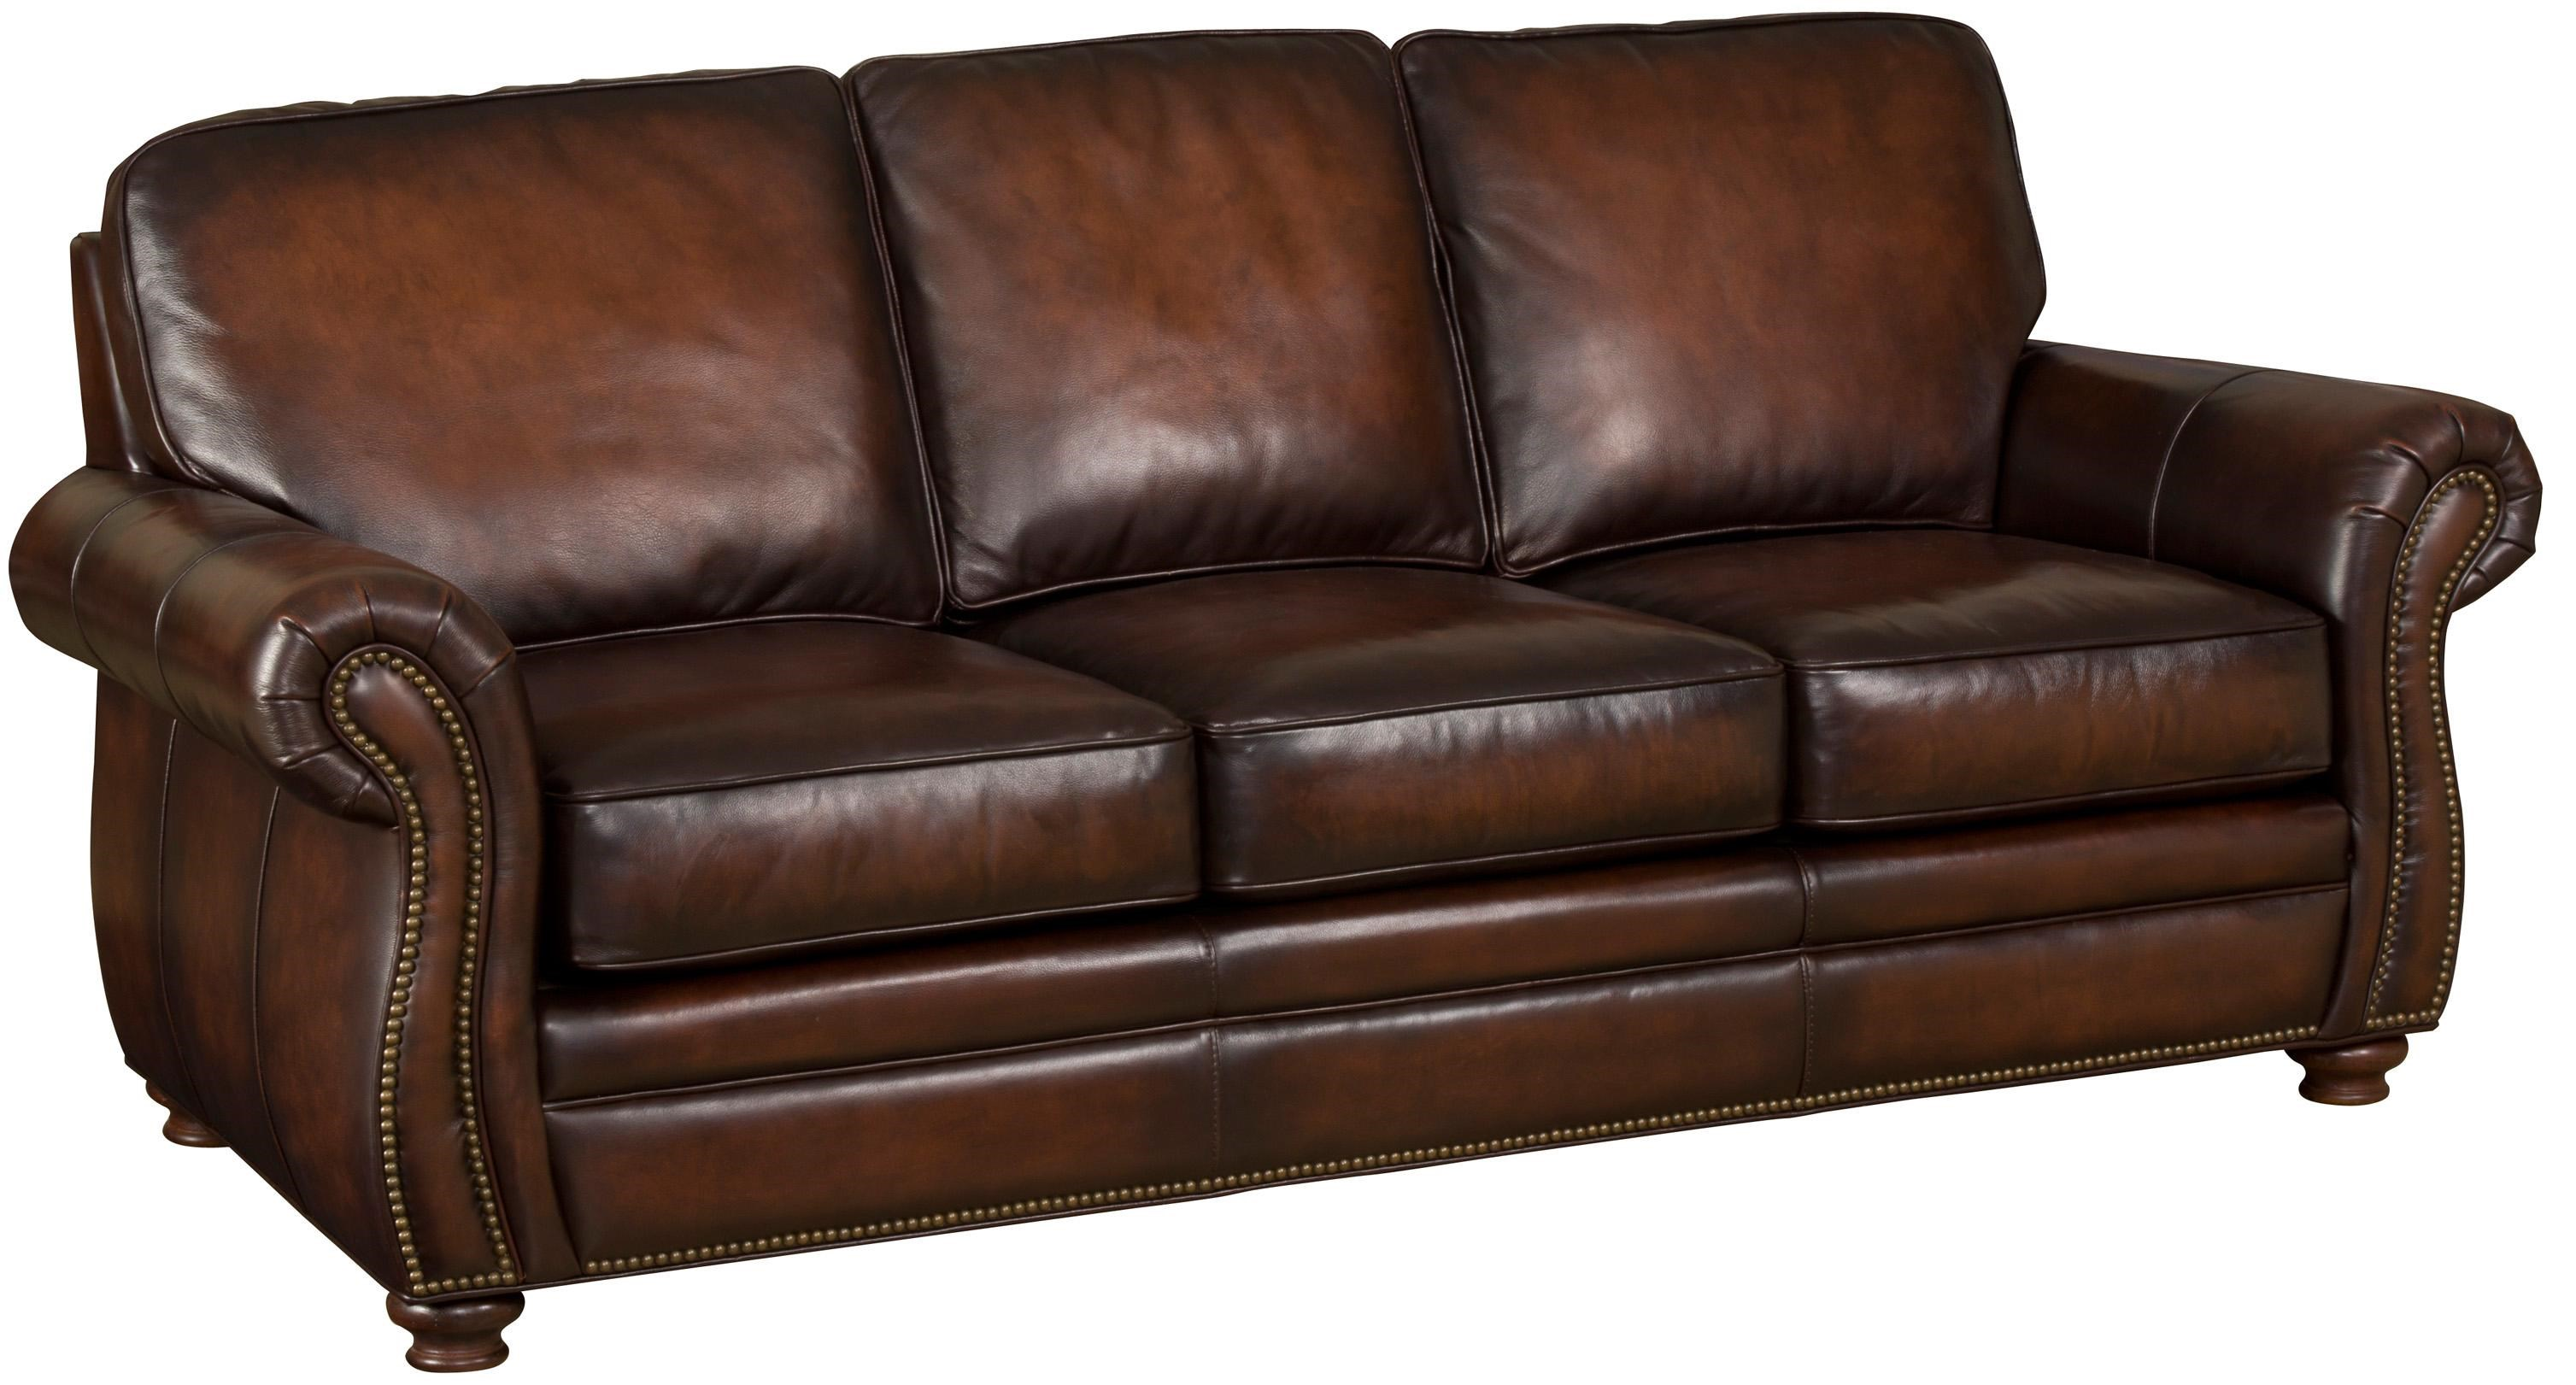 SS186 Brown Leather Sofa With Exposed Wood Bun Feet By Hooker Furniture